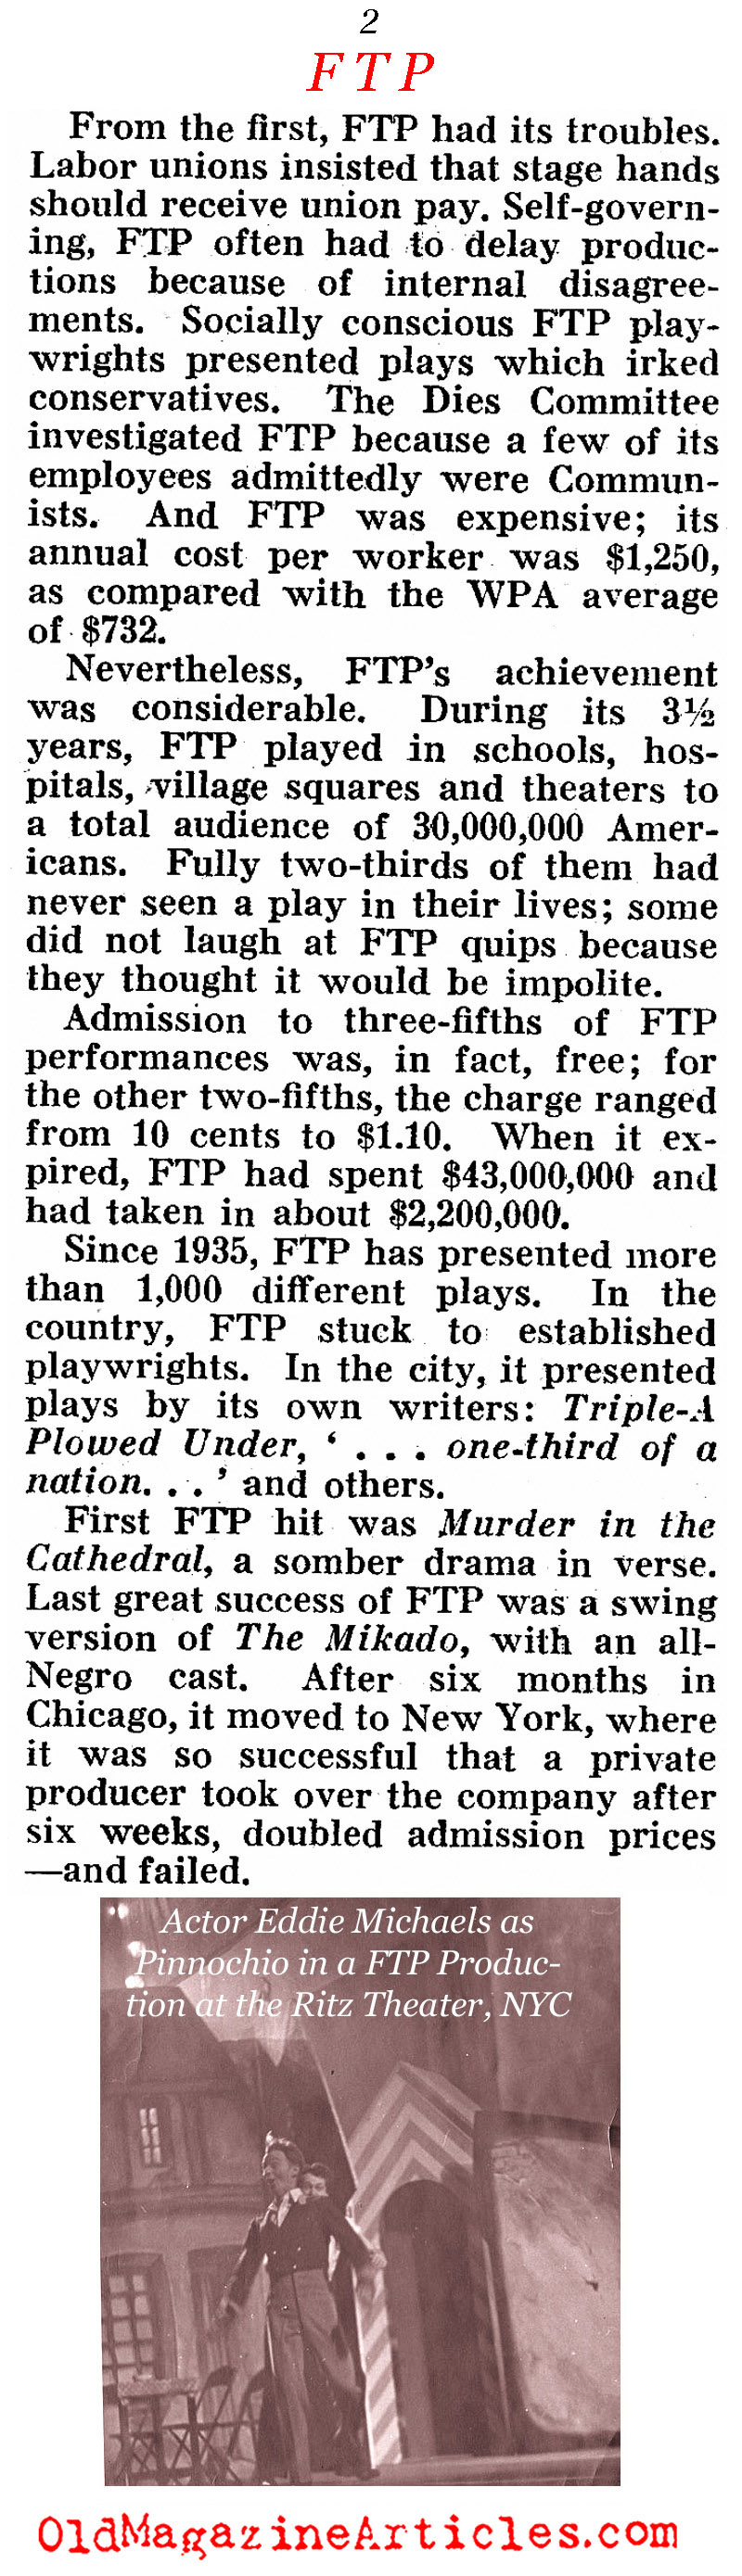 The Federal Theater Project (Pathfinder Magazine, 1939)